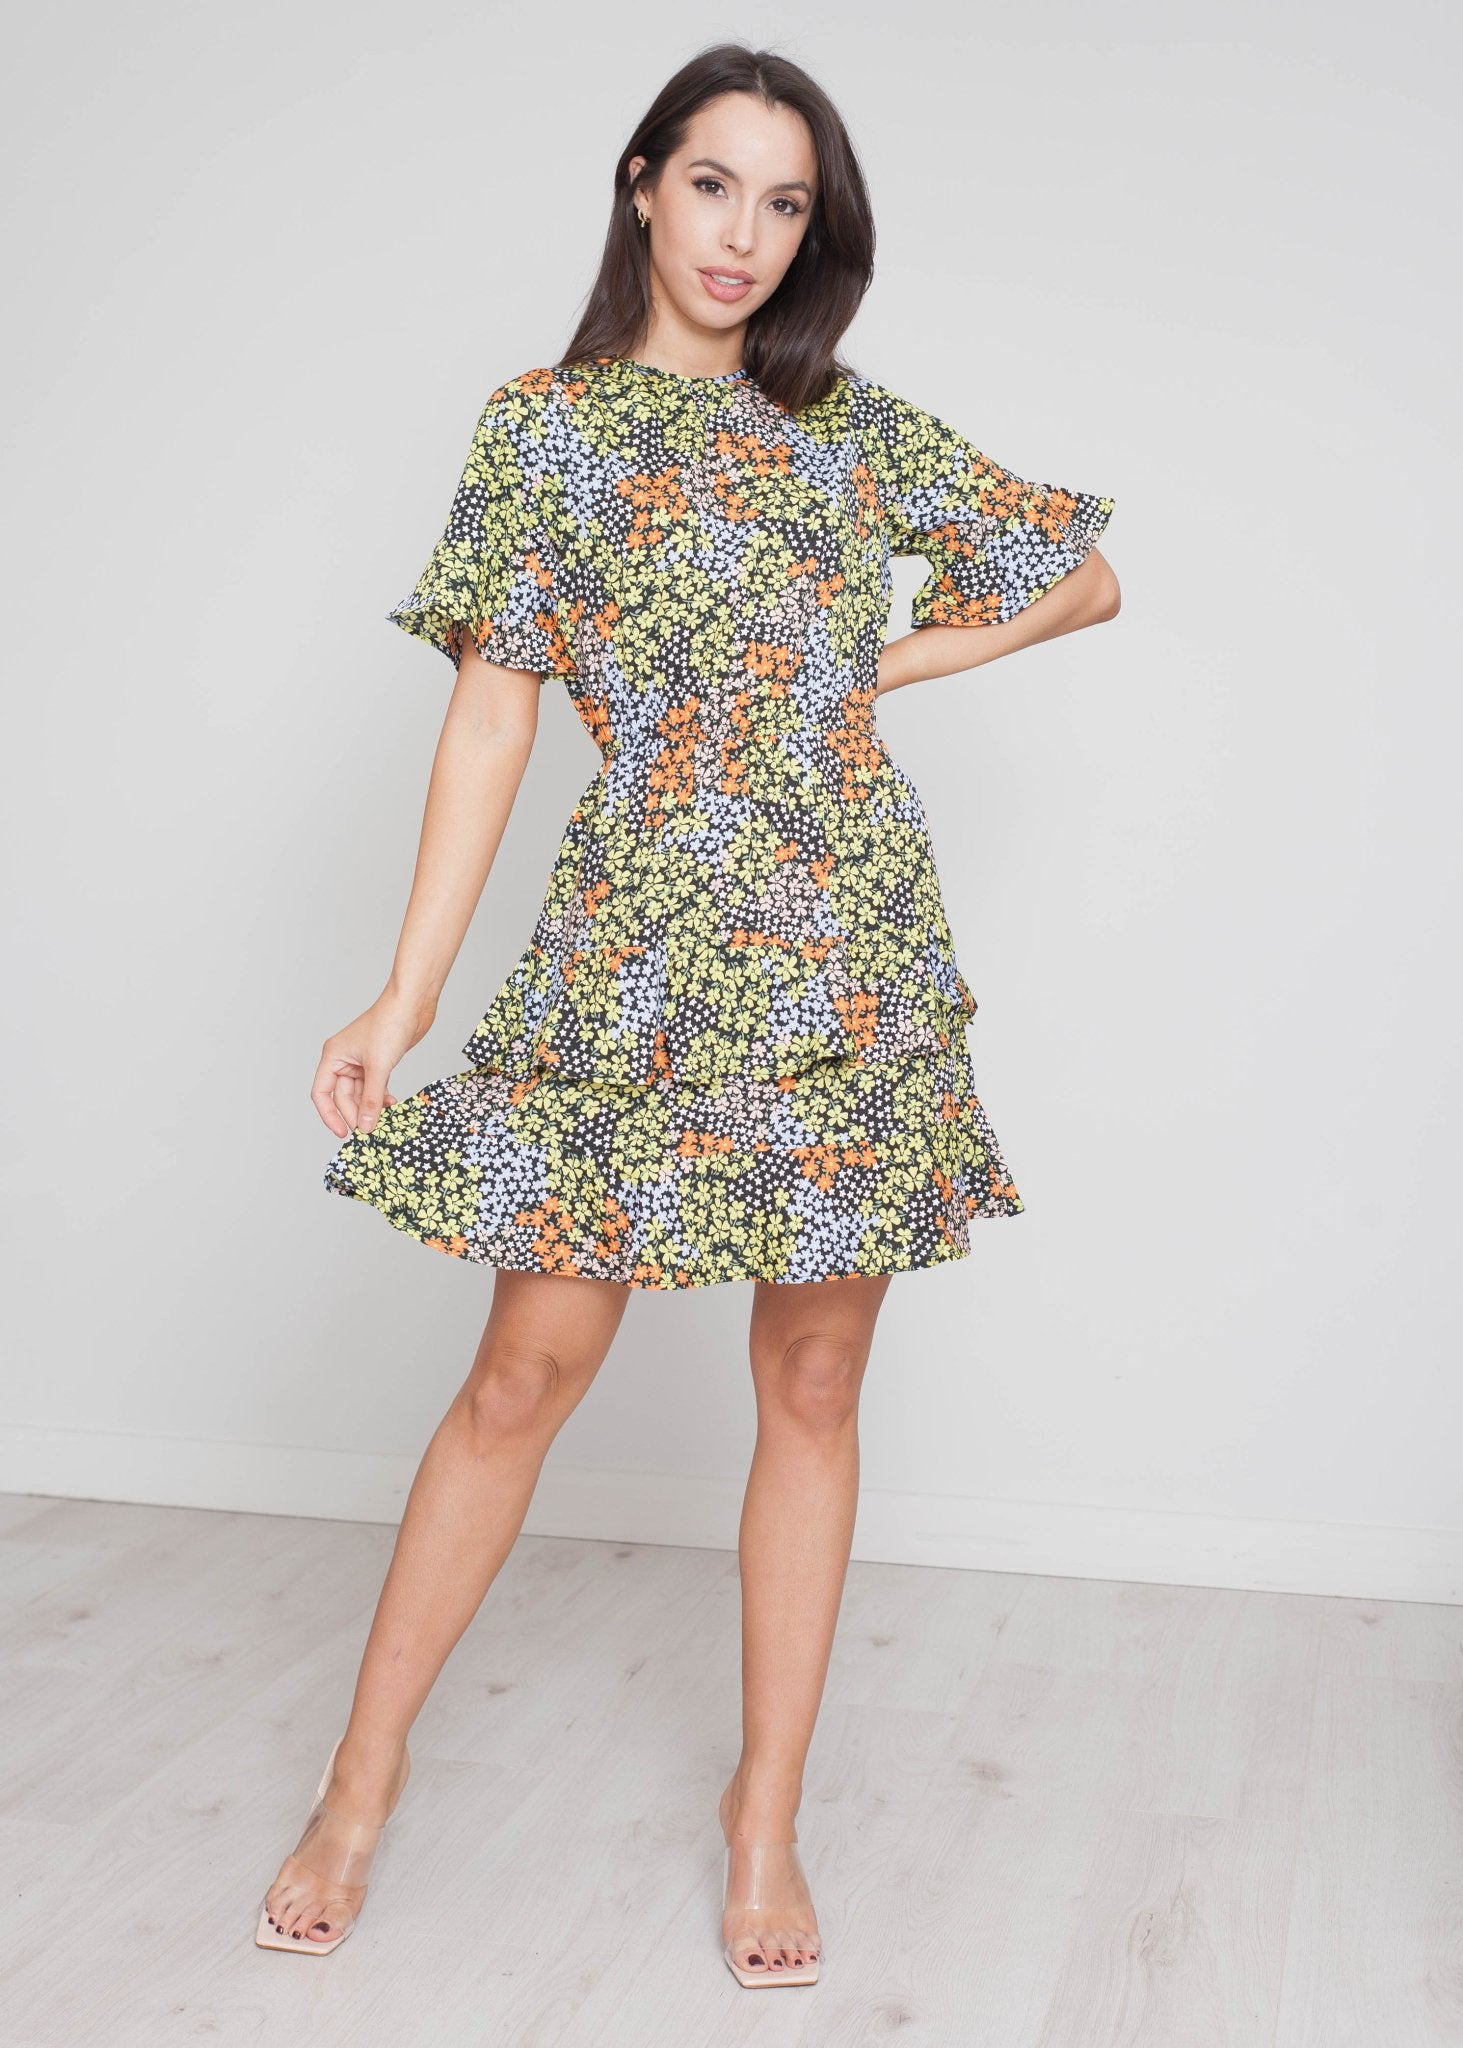 Freya Floral Dress In Multi - The Walk in Wardrobe